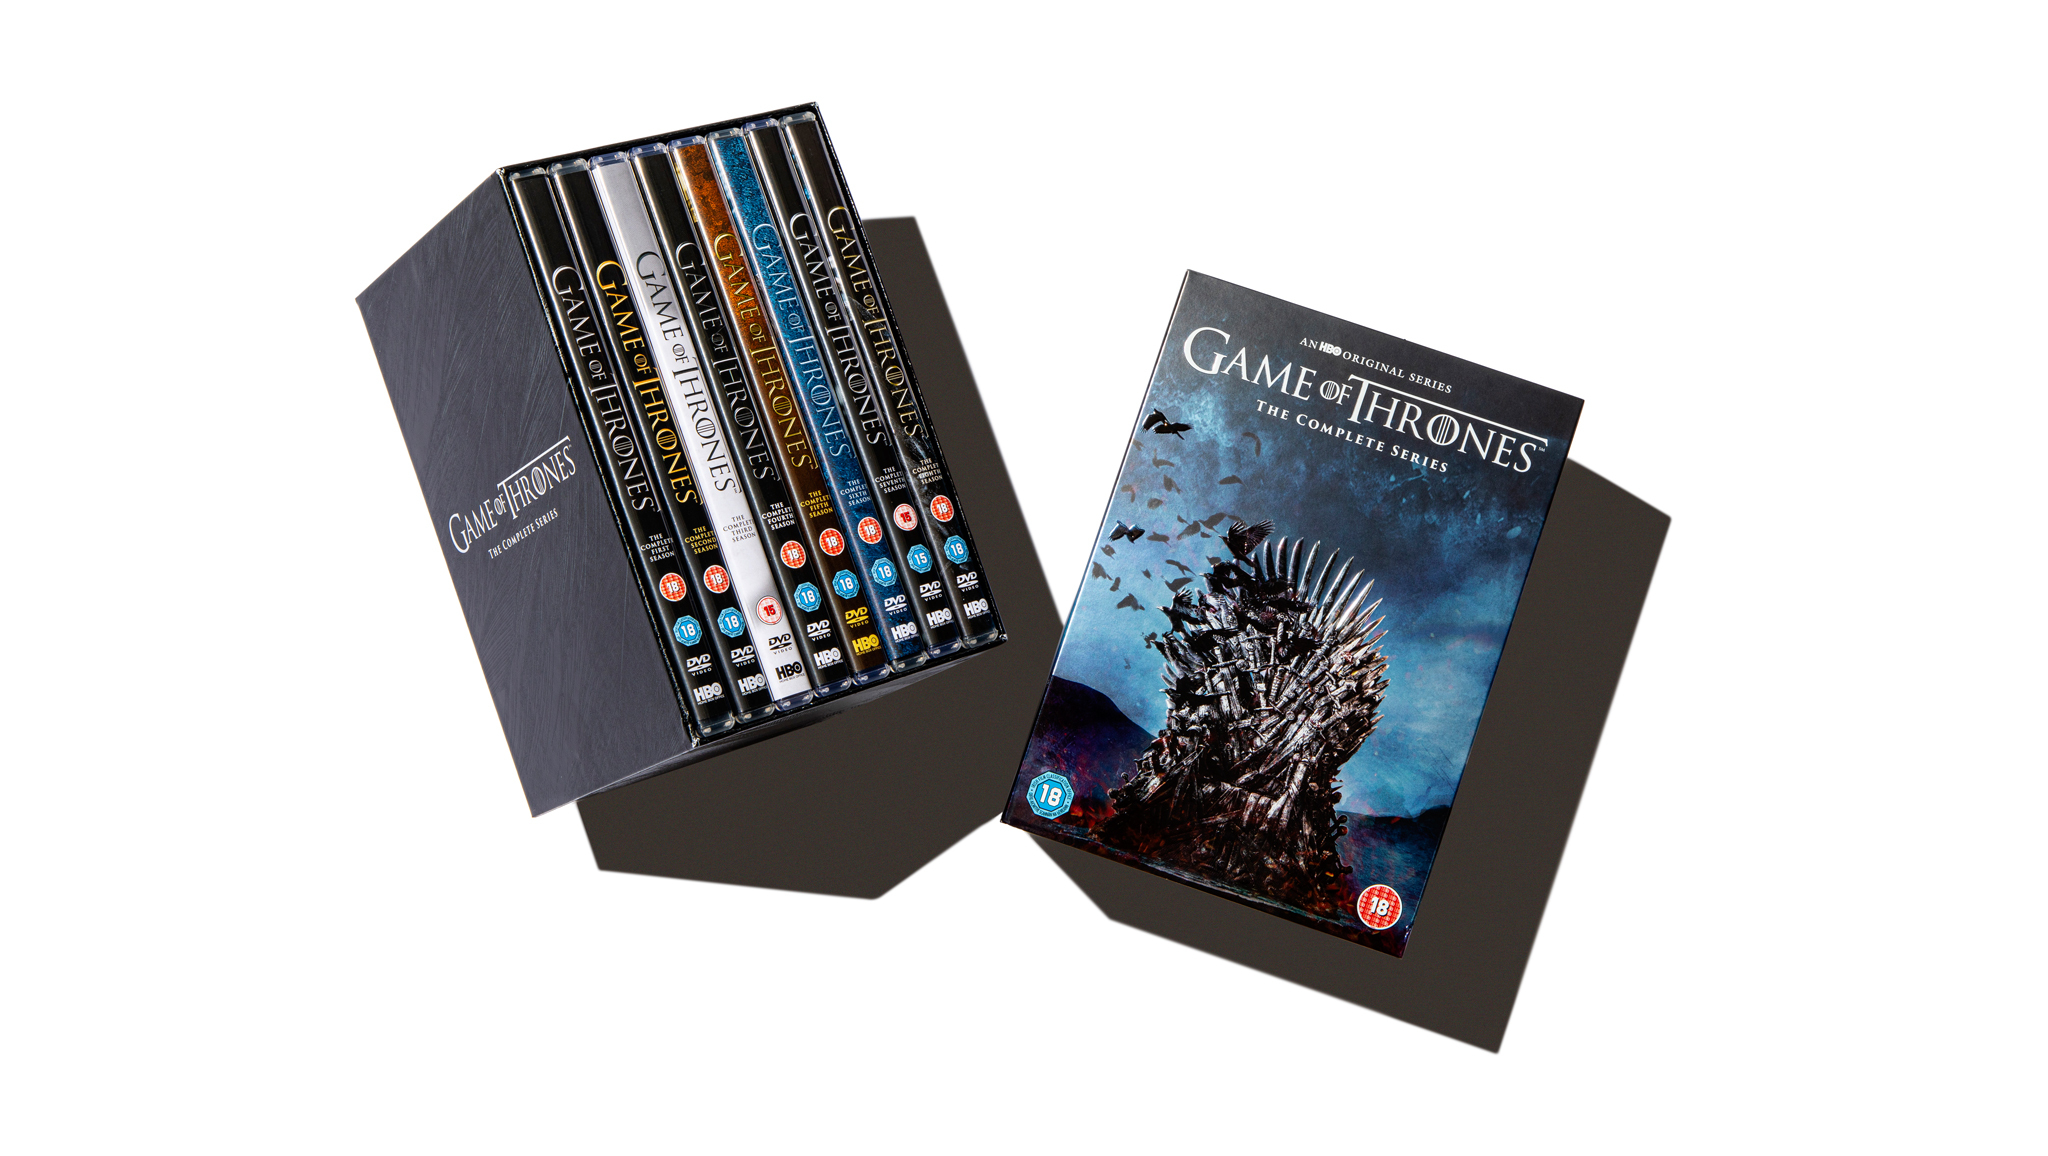 The full DVD boxset of Game of Thrones